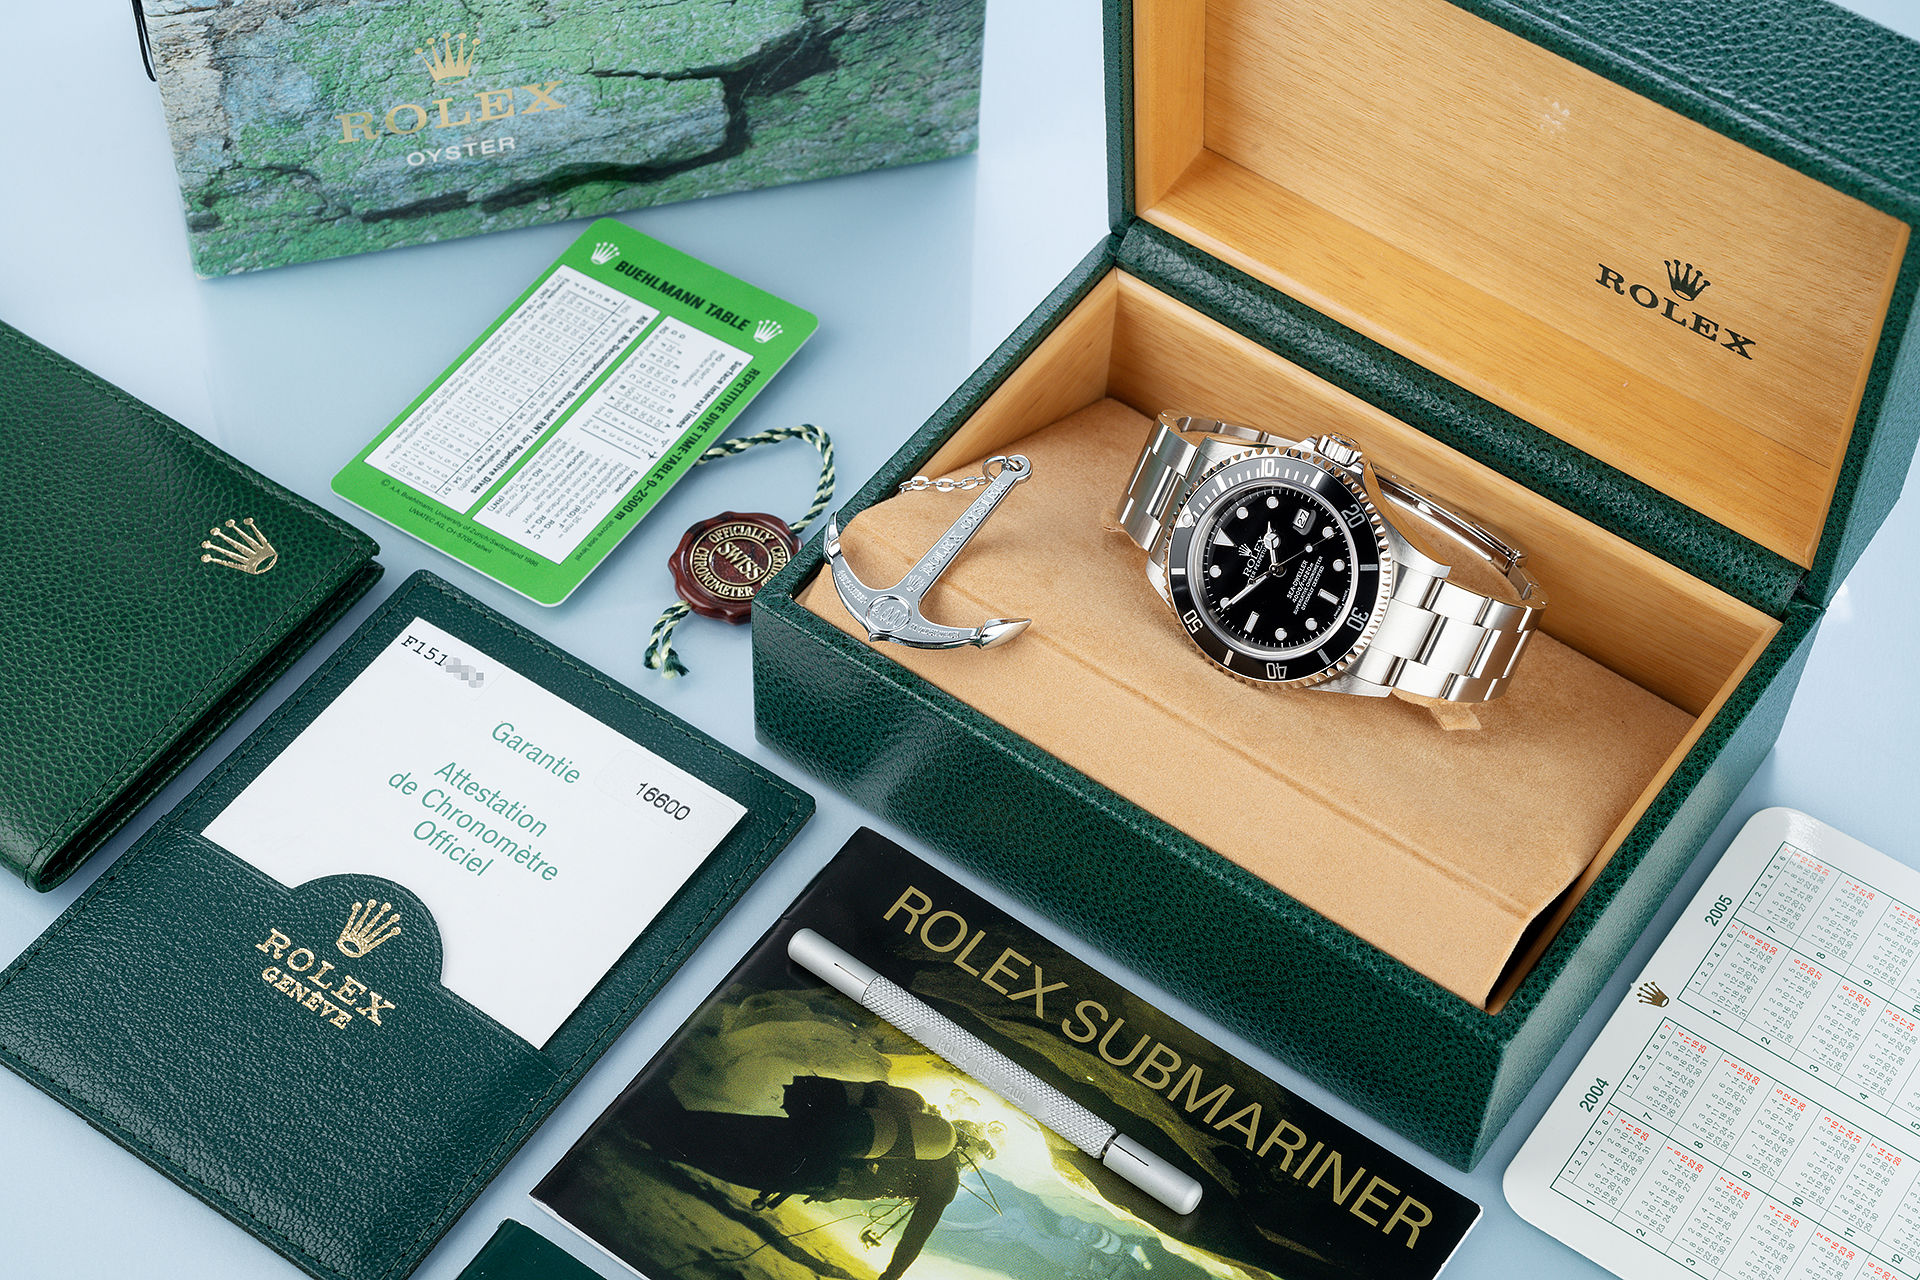 ref 16600 | 'New Old Stock' | Rolex Sea-Dweller